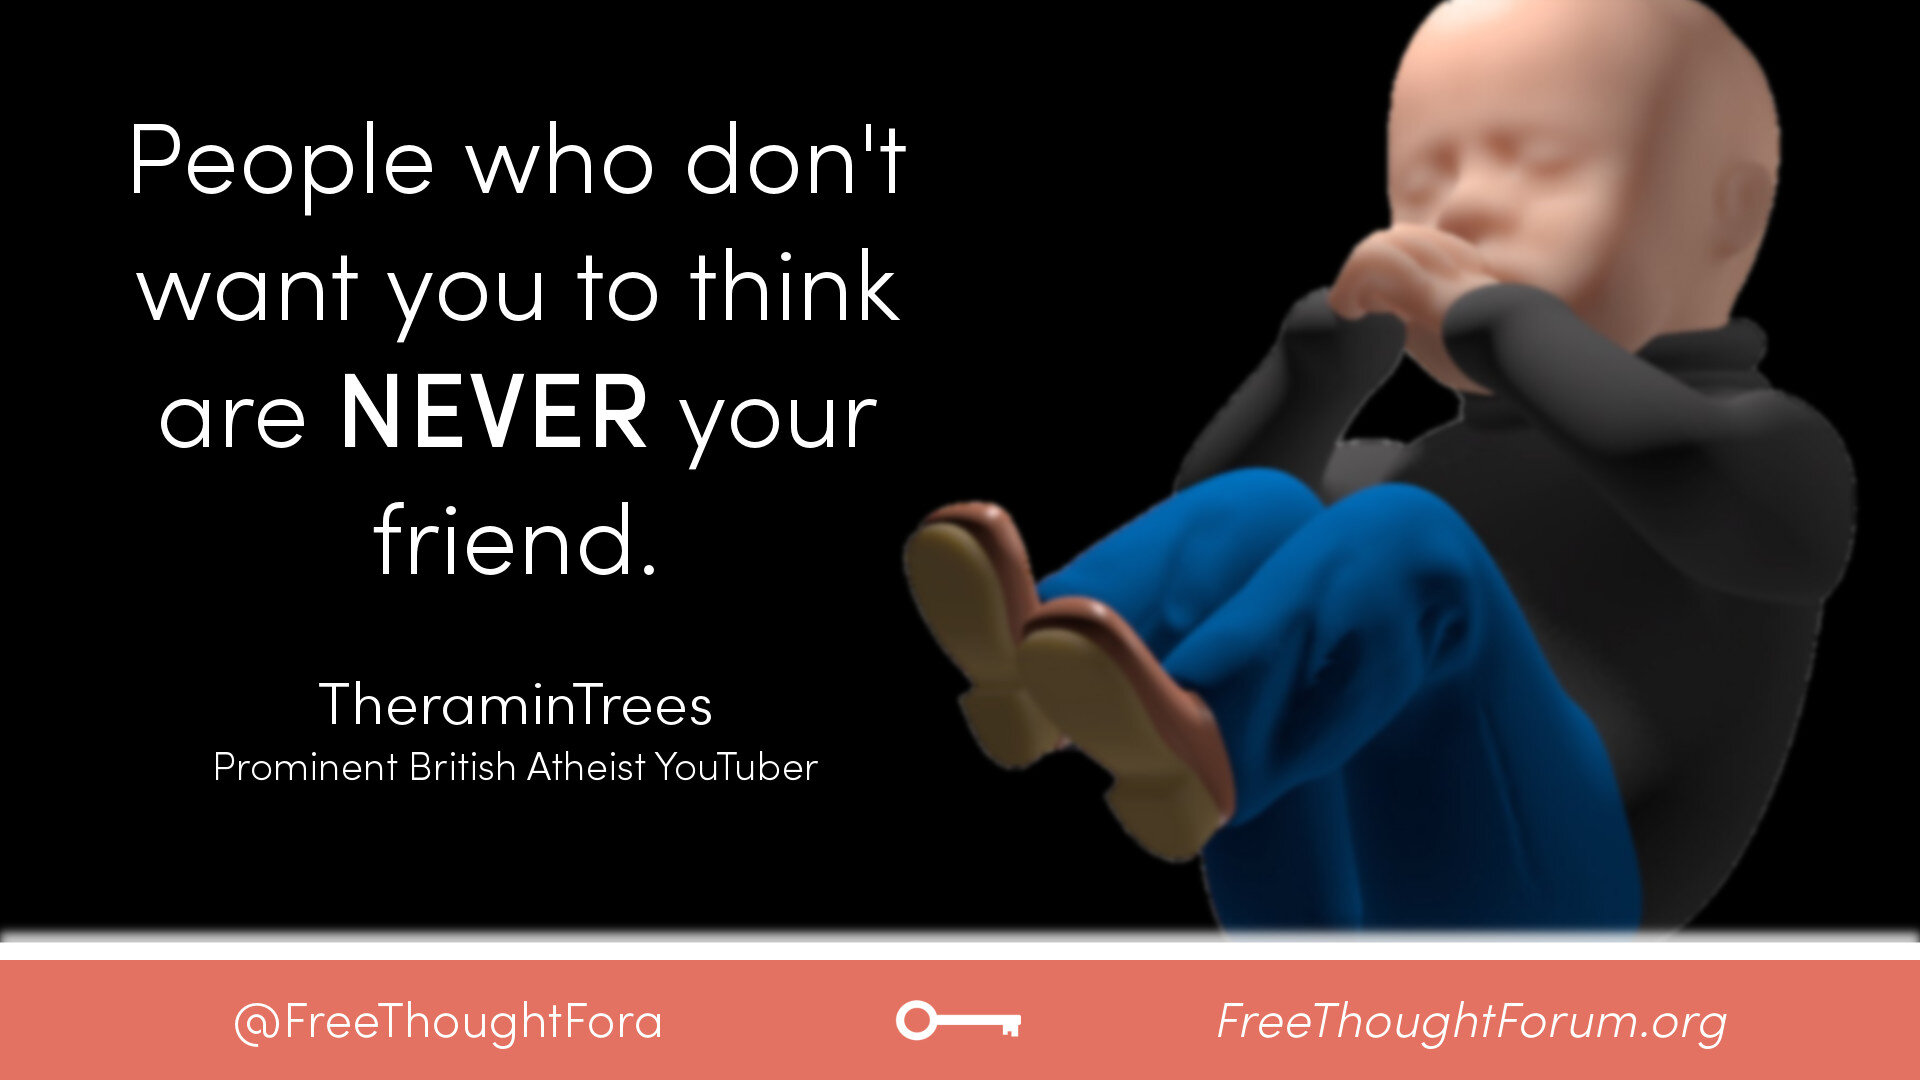 People who don't want you to think are NEVER your friend.